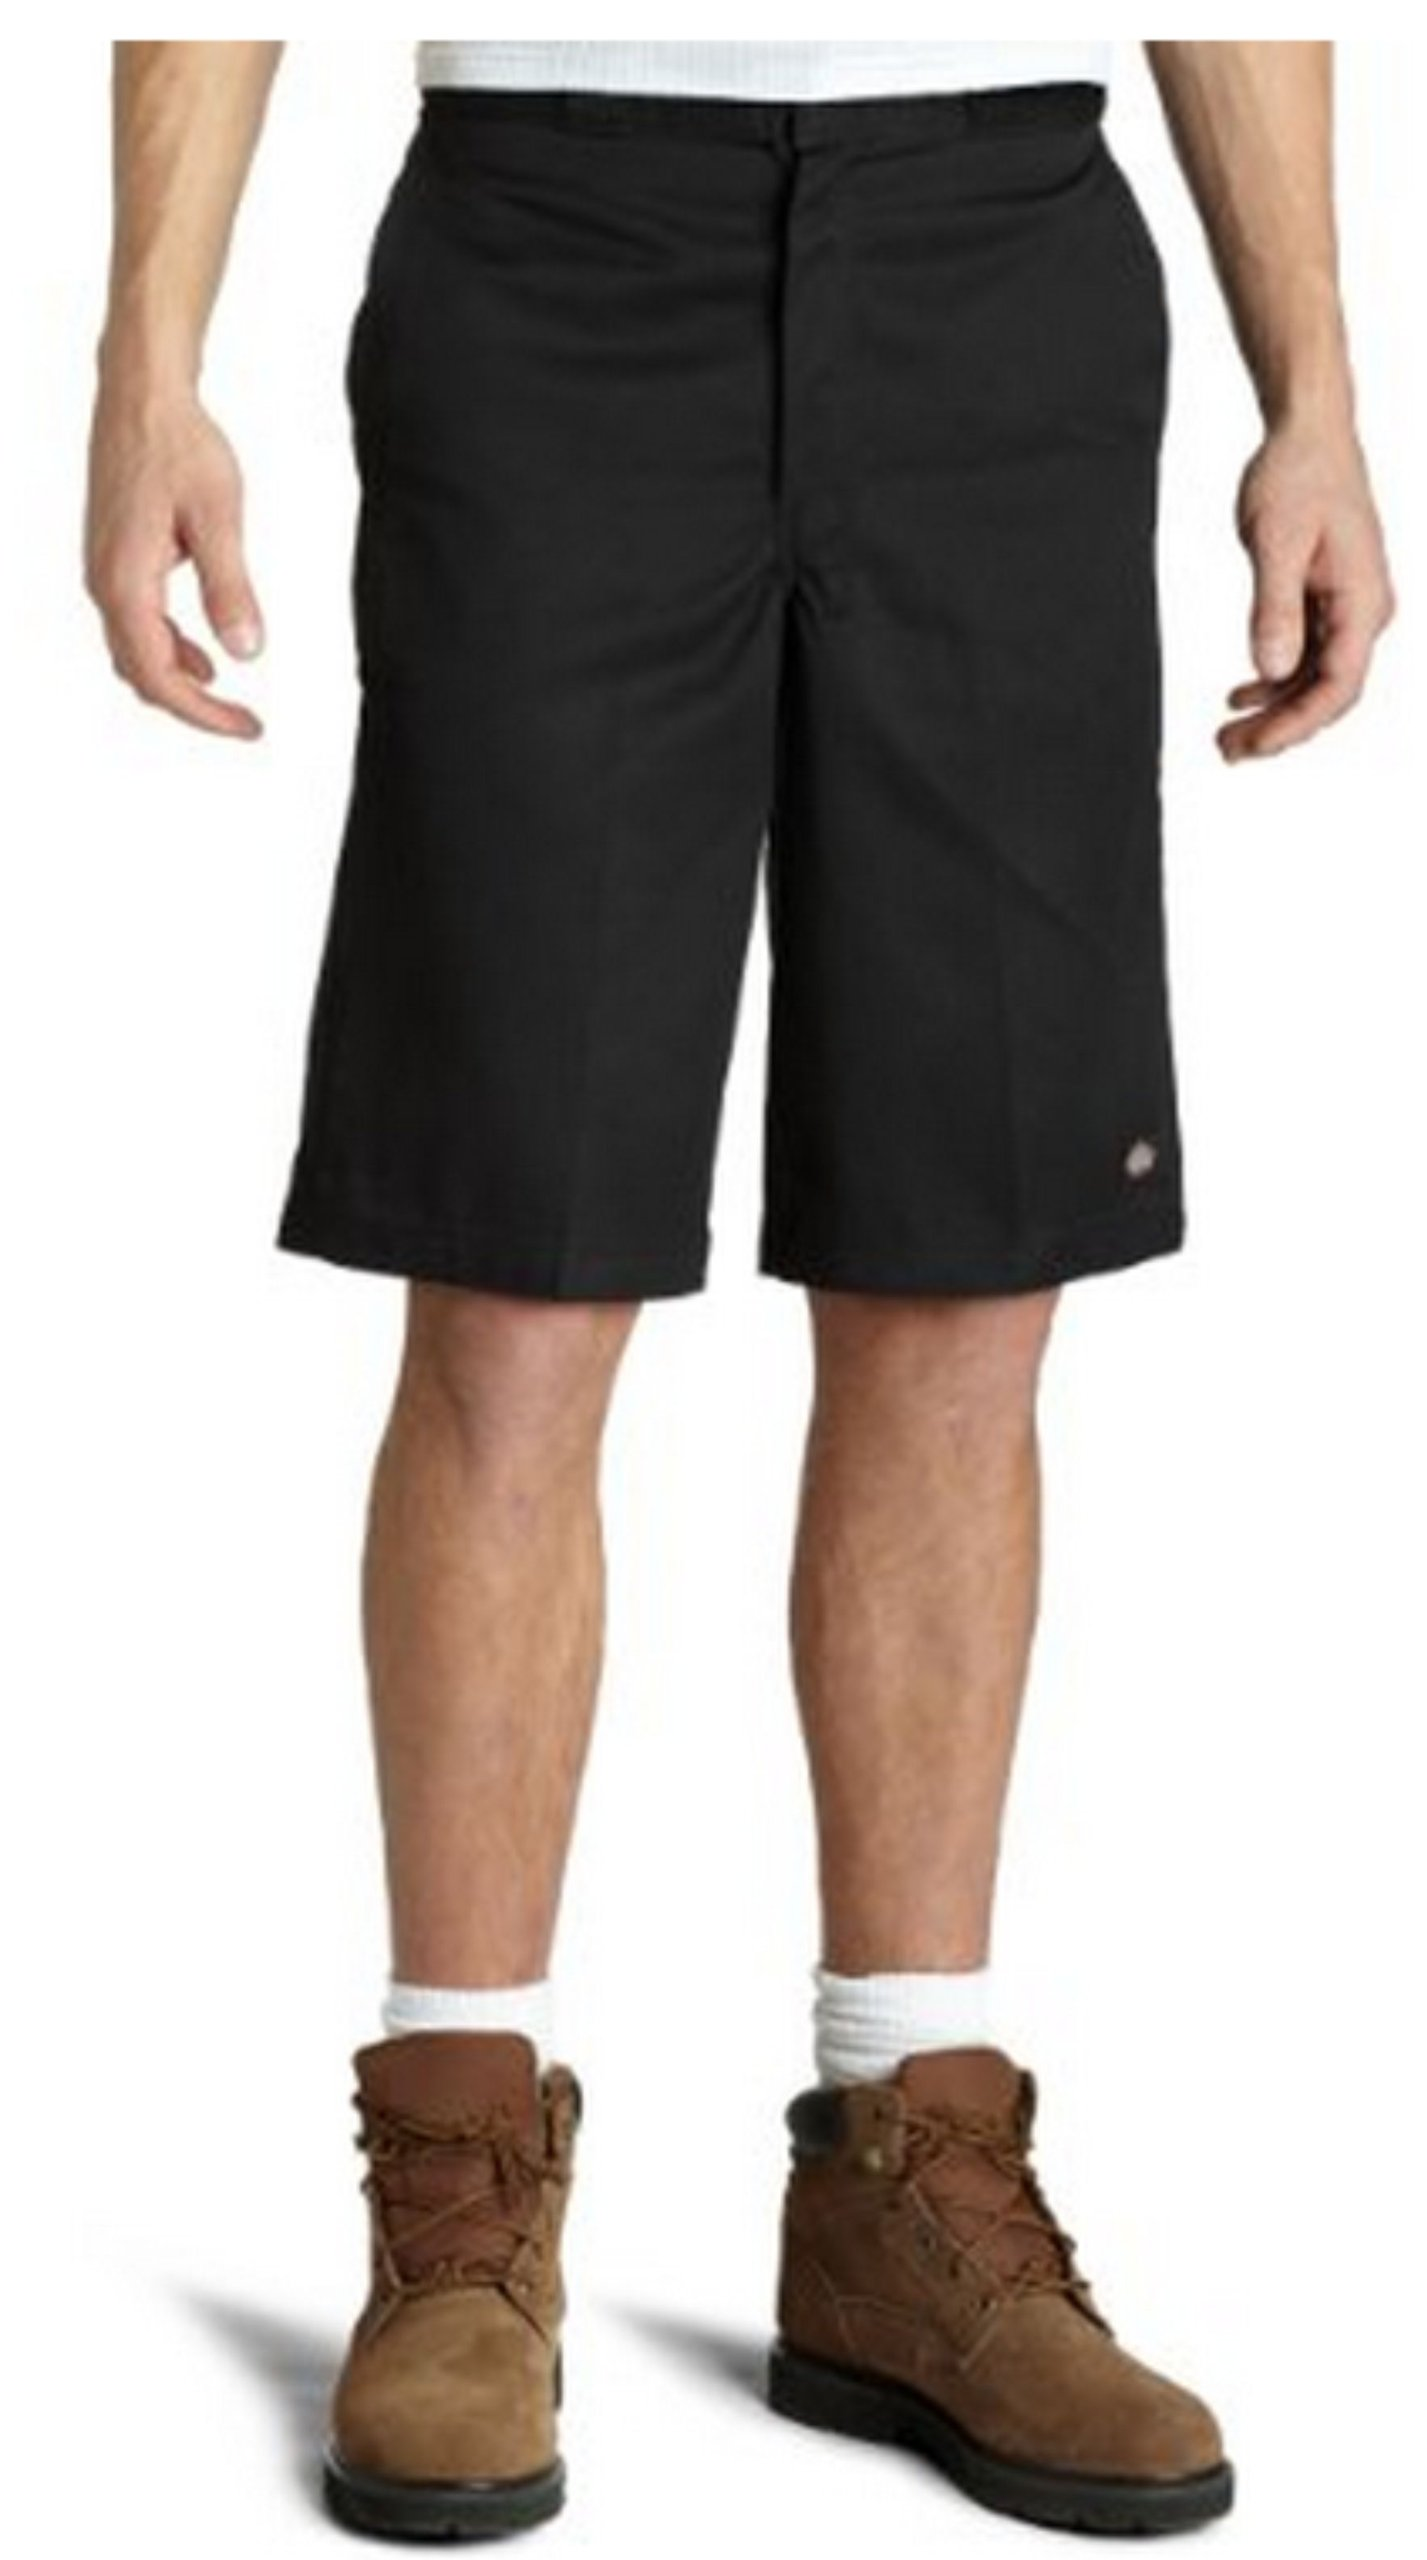 Dickies Occupational Workwear LR337BK 33 Cotton Relaxed Fit Men's Industrial Cargo Short with Metal Tack Closure, 33'' Waist Size, 11'' Inseam, Black